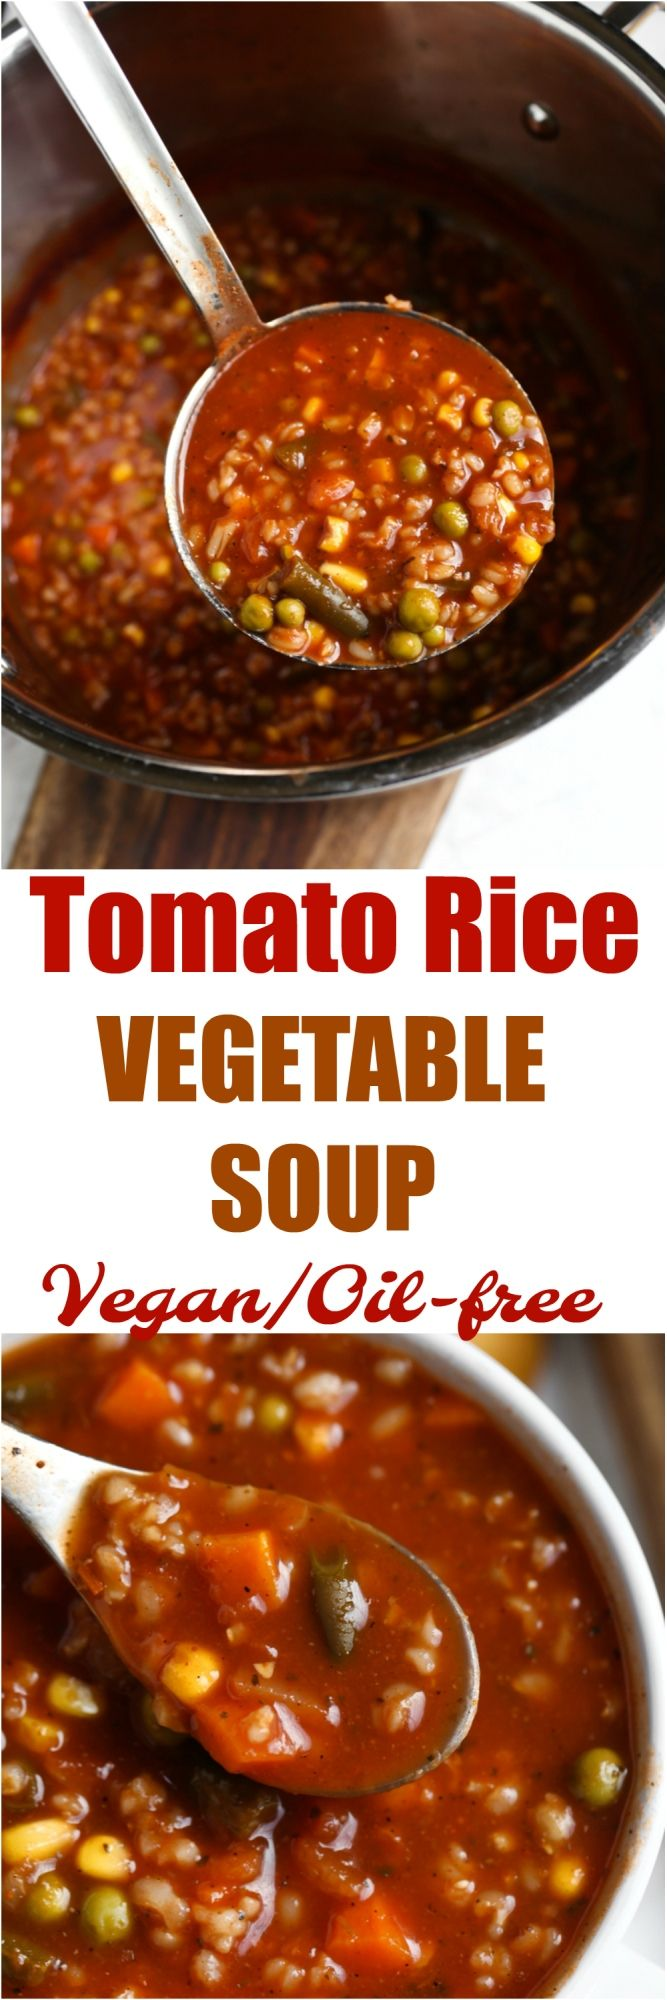 The absolute most delicious and flavorful vegetable soup out there! With a rich tomato broth and hearty rice, this soup will comfort you and fill you up. It is oil-free and incredibly healthy and good for you. via @thevegan8